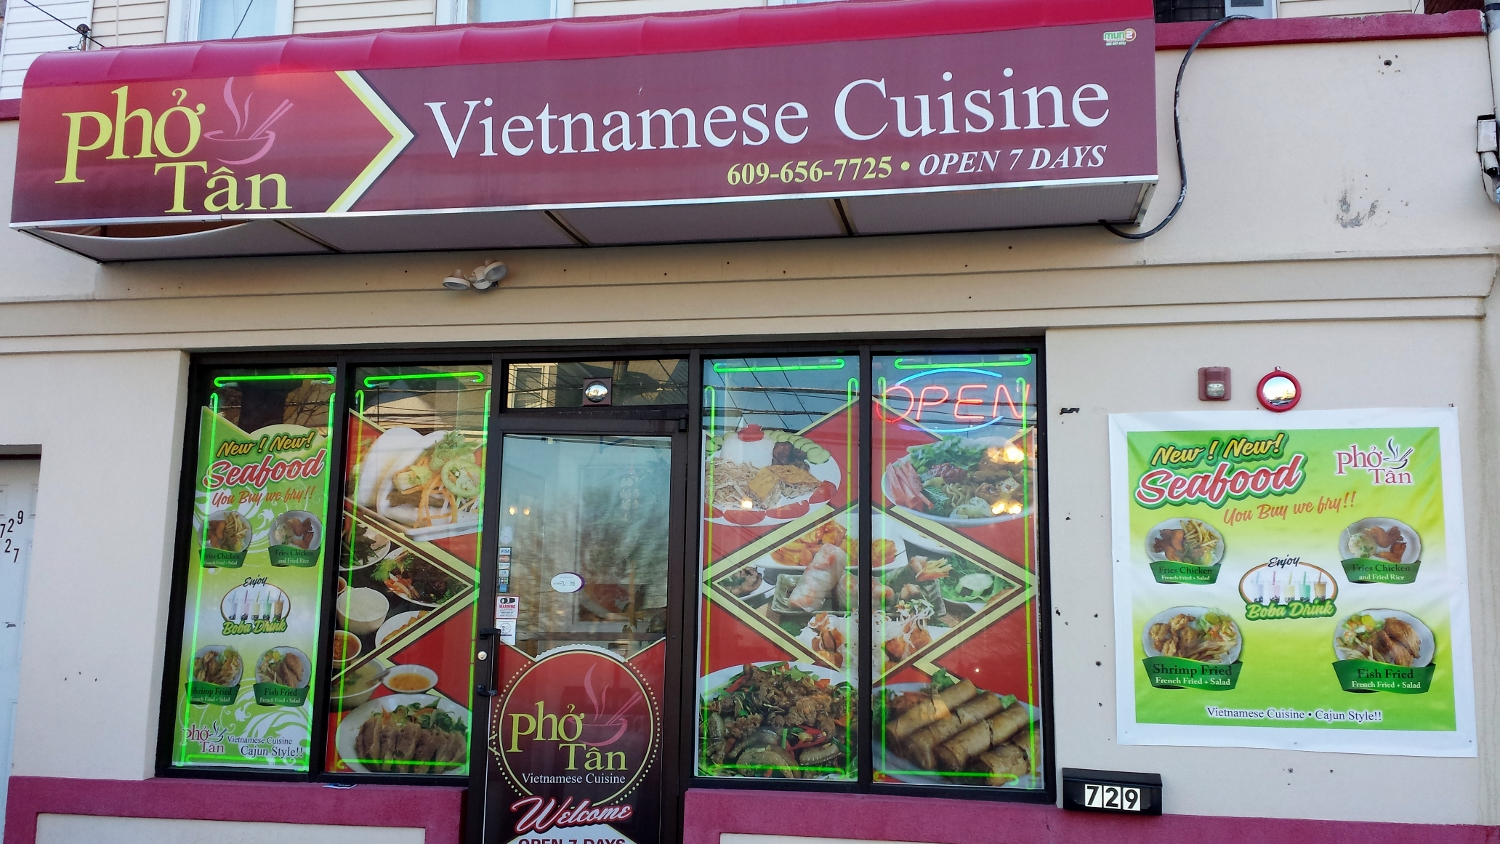 Pho Tan, as far as we can tell, is the only Vietnamese restaurant in Trenton.